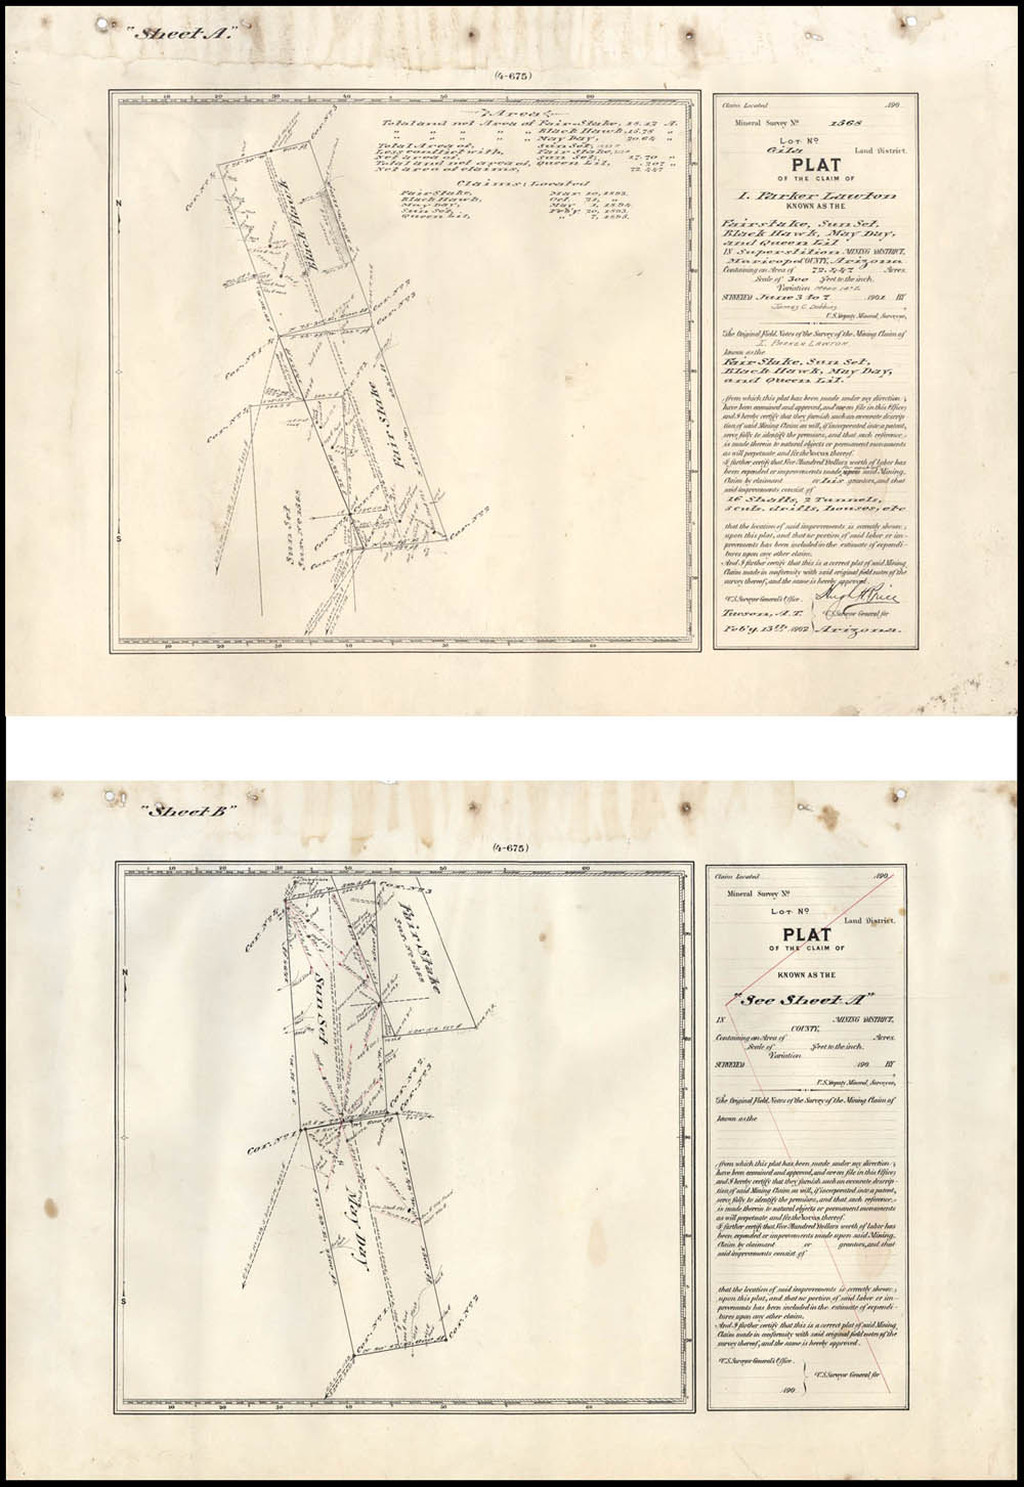 [Maricopa County, Arizona Territory]  Mineral Survey No. 1568 -- Gila Land District  -- Plat of the Claim of I. Parker Lawton  . . . In Superstition Mining District, Maricopa Counbty Arizona . . .  1902  [2 sheets] By U.S. Surveyor General